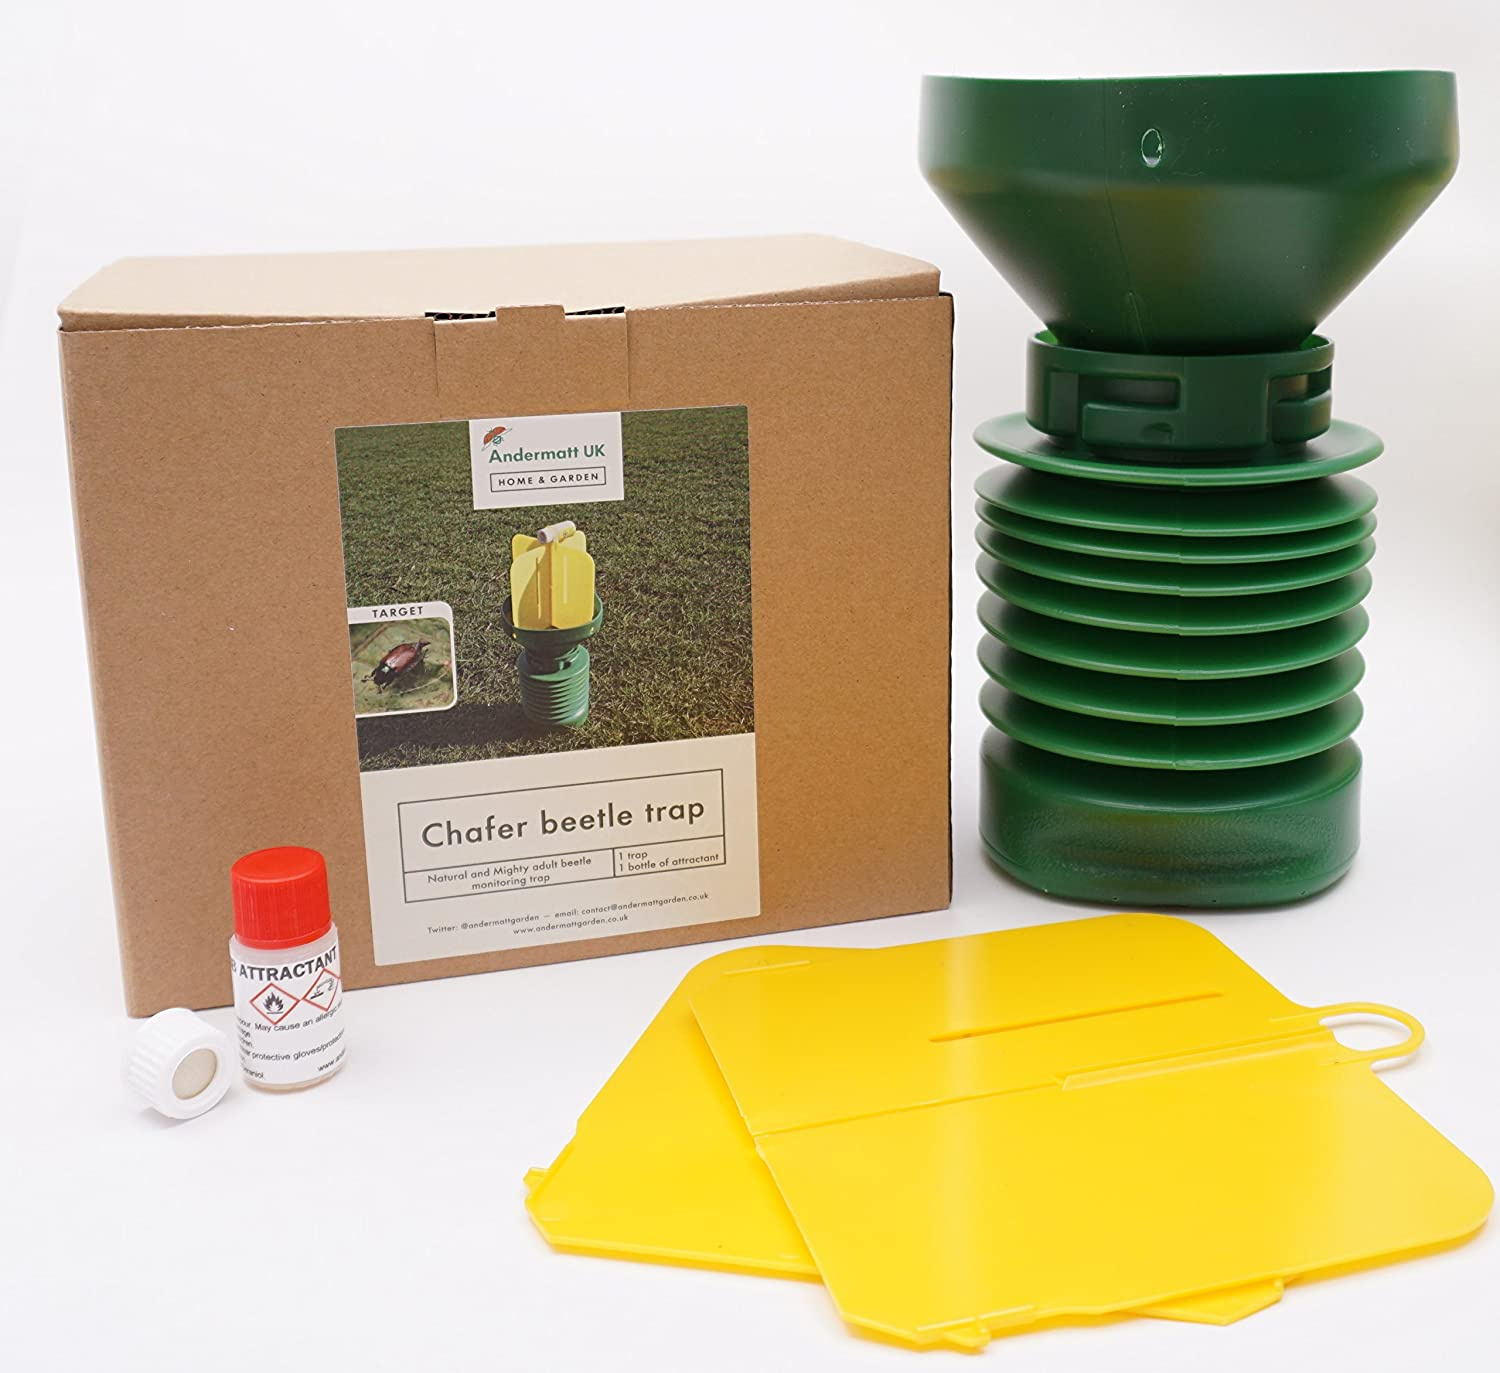 Andermatt Home & Garden Chafer beetle trap - includes male and female attractant